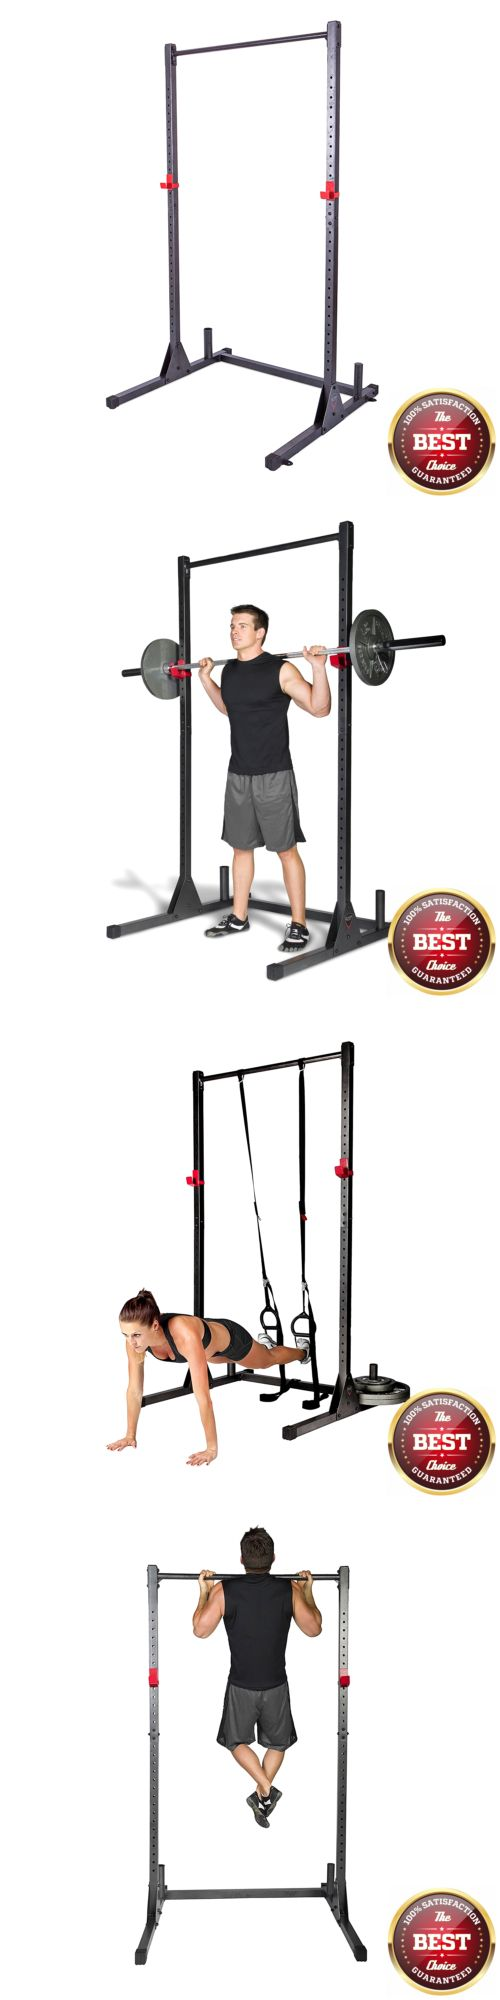 Power Racks and Smith Machines 179815: Free Standing Pull Up Bar Gym Power Rack Fitness Exercise Stand Workout Station -> BUY IT NOW ONLY: $123.3 on eBay!